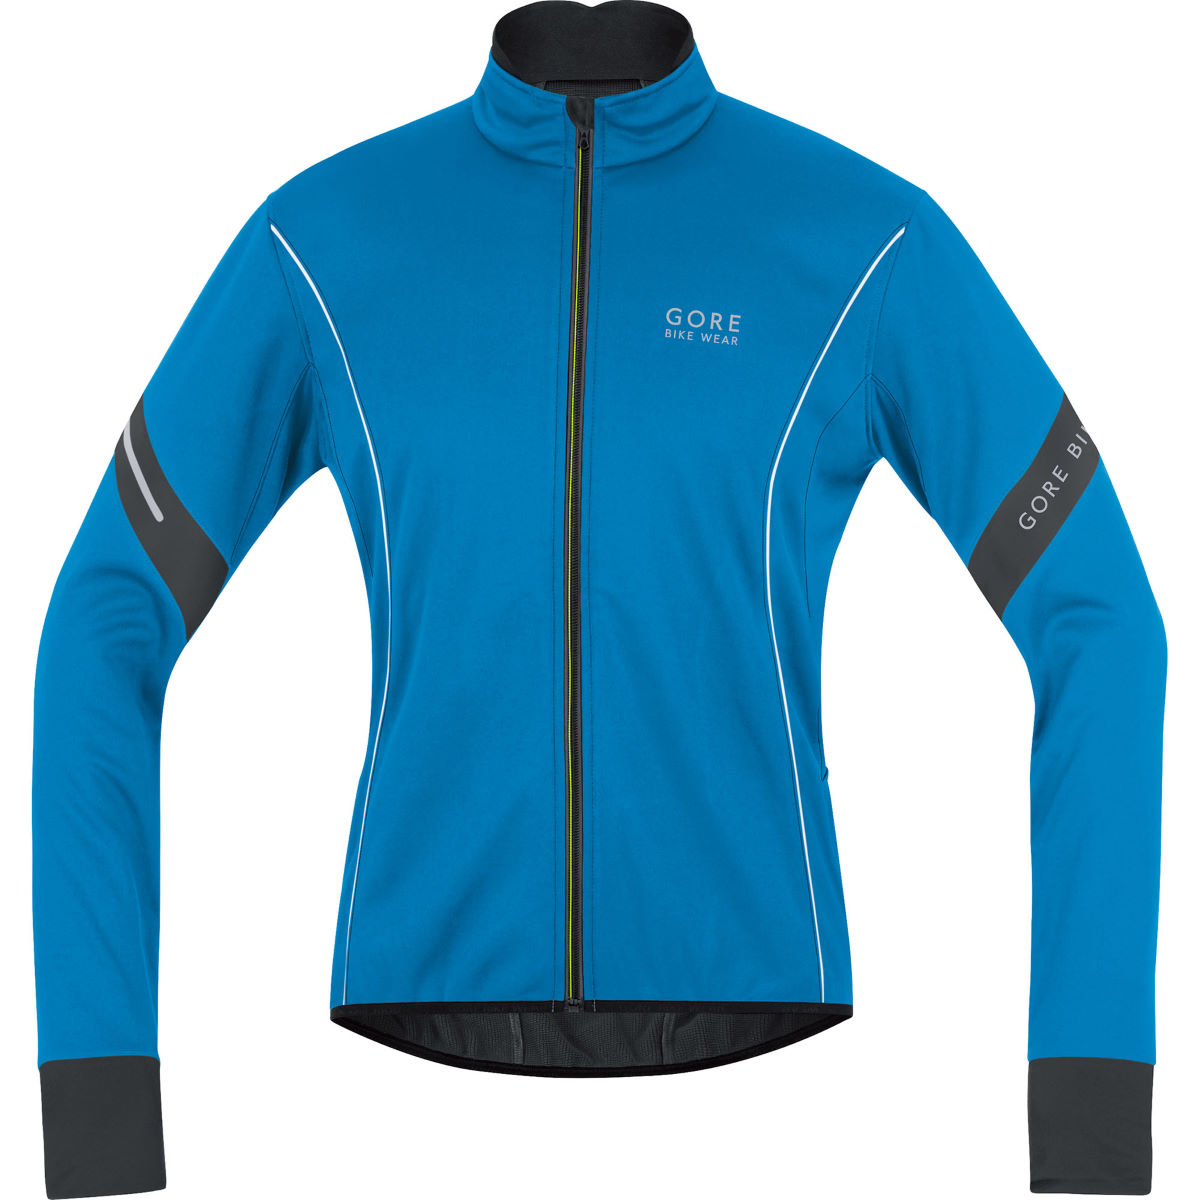 Gore Bike Wear Power 2.0 Softshell Jacket AW14 - Extra Large